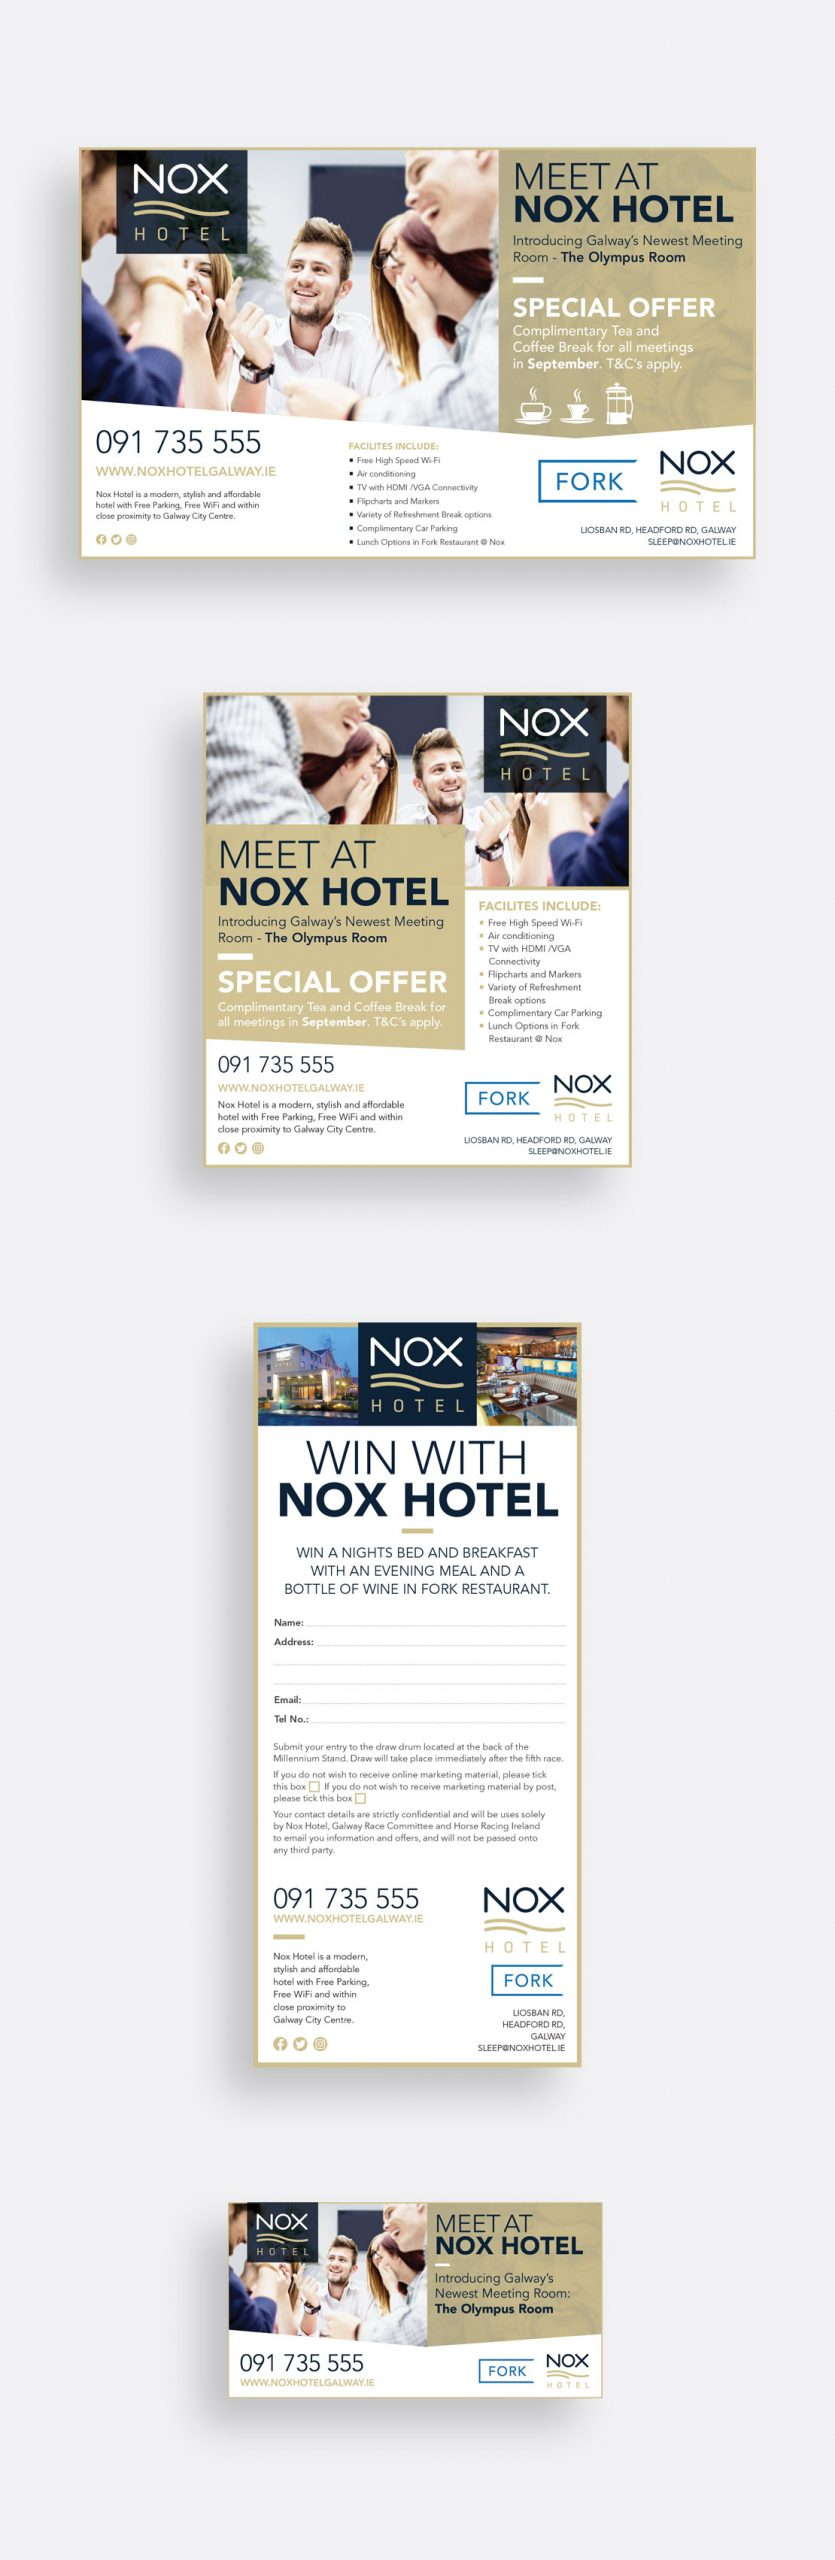 Nox Hotel 'Meet at Nox' print and social media campaign